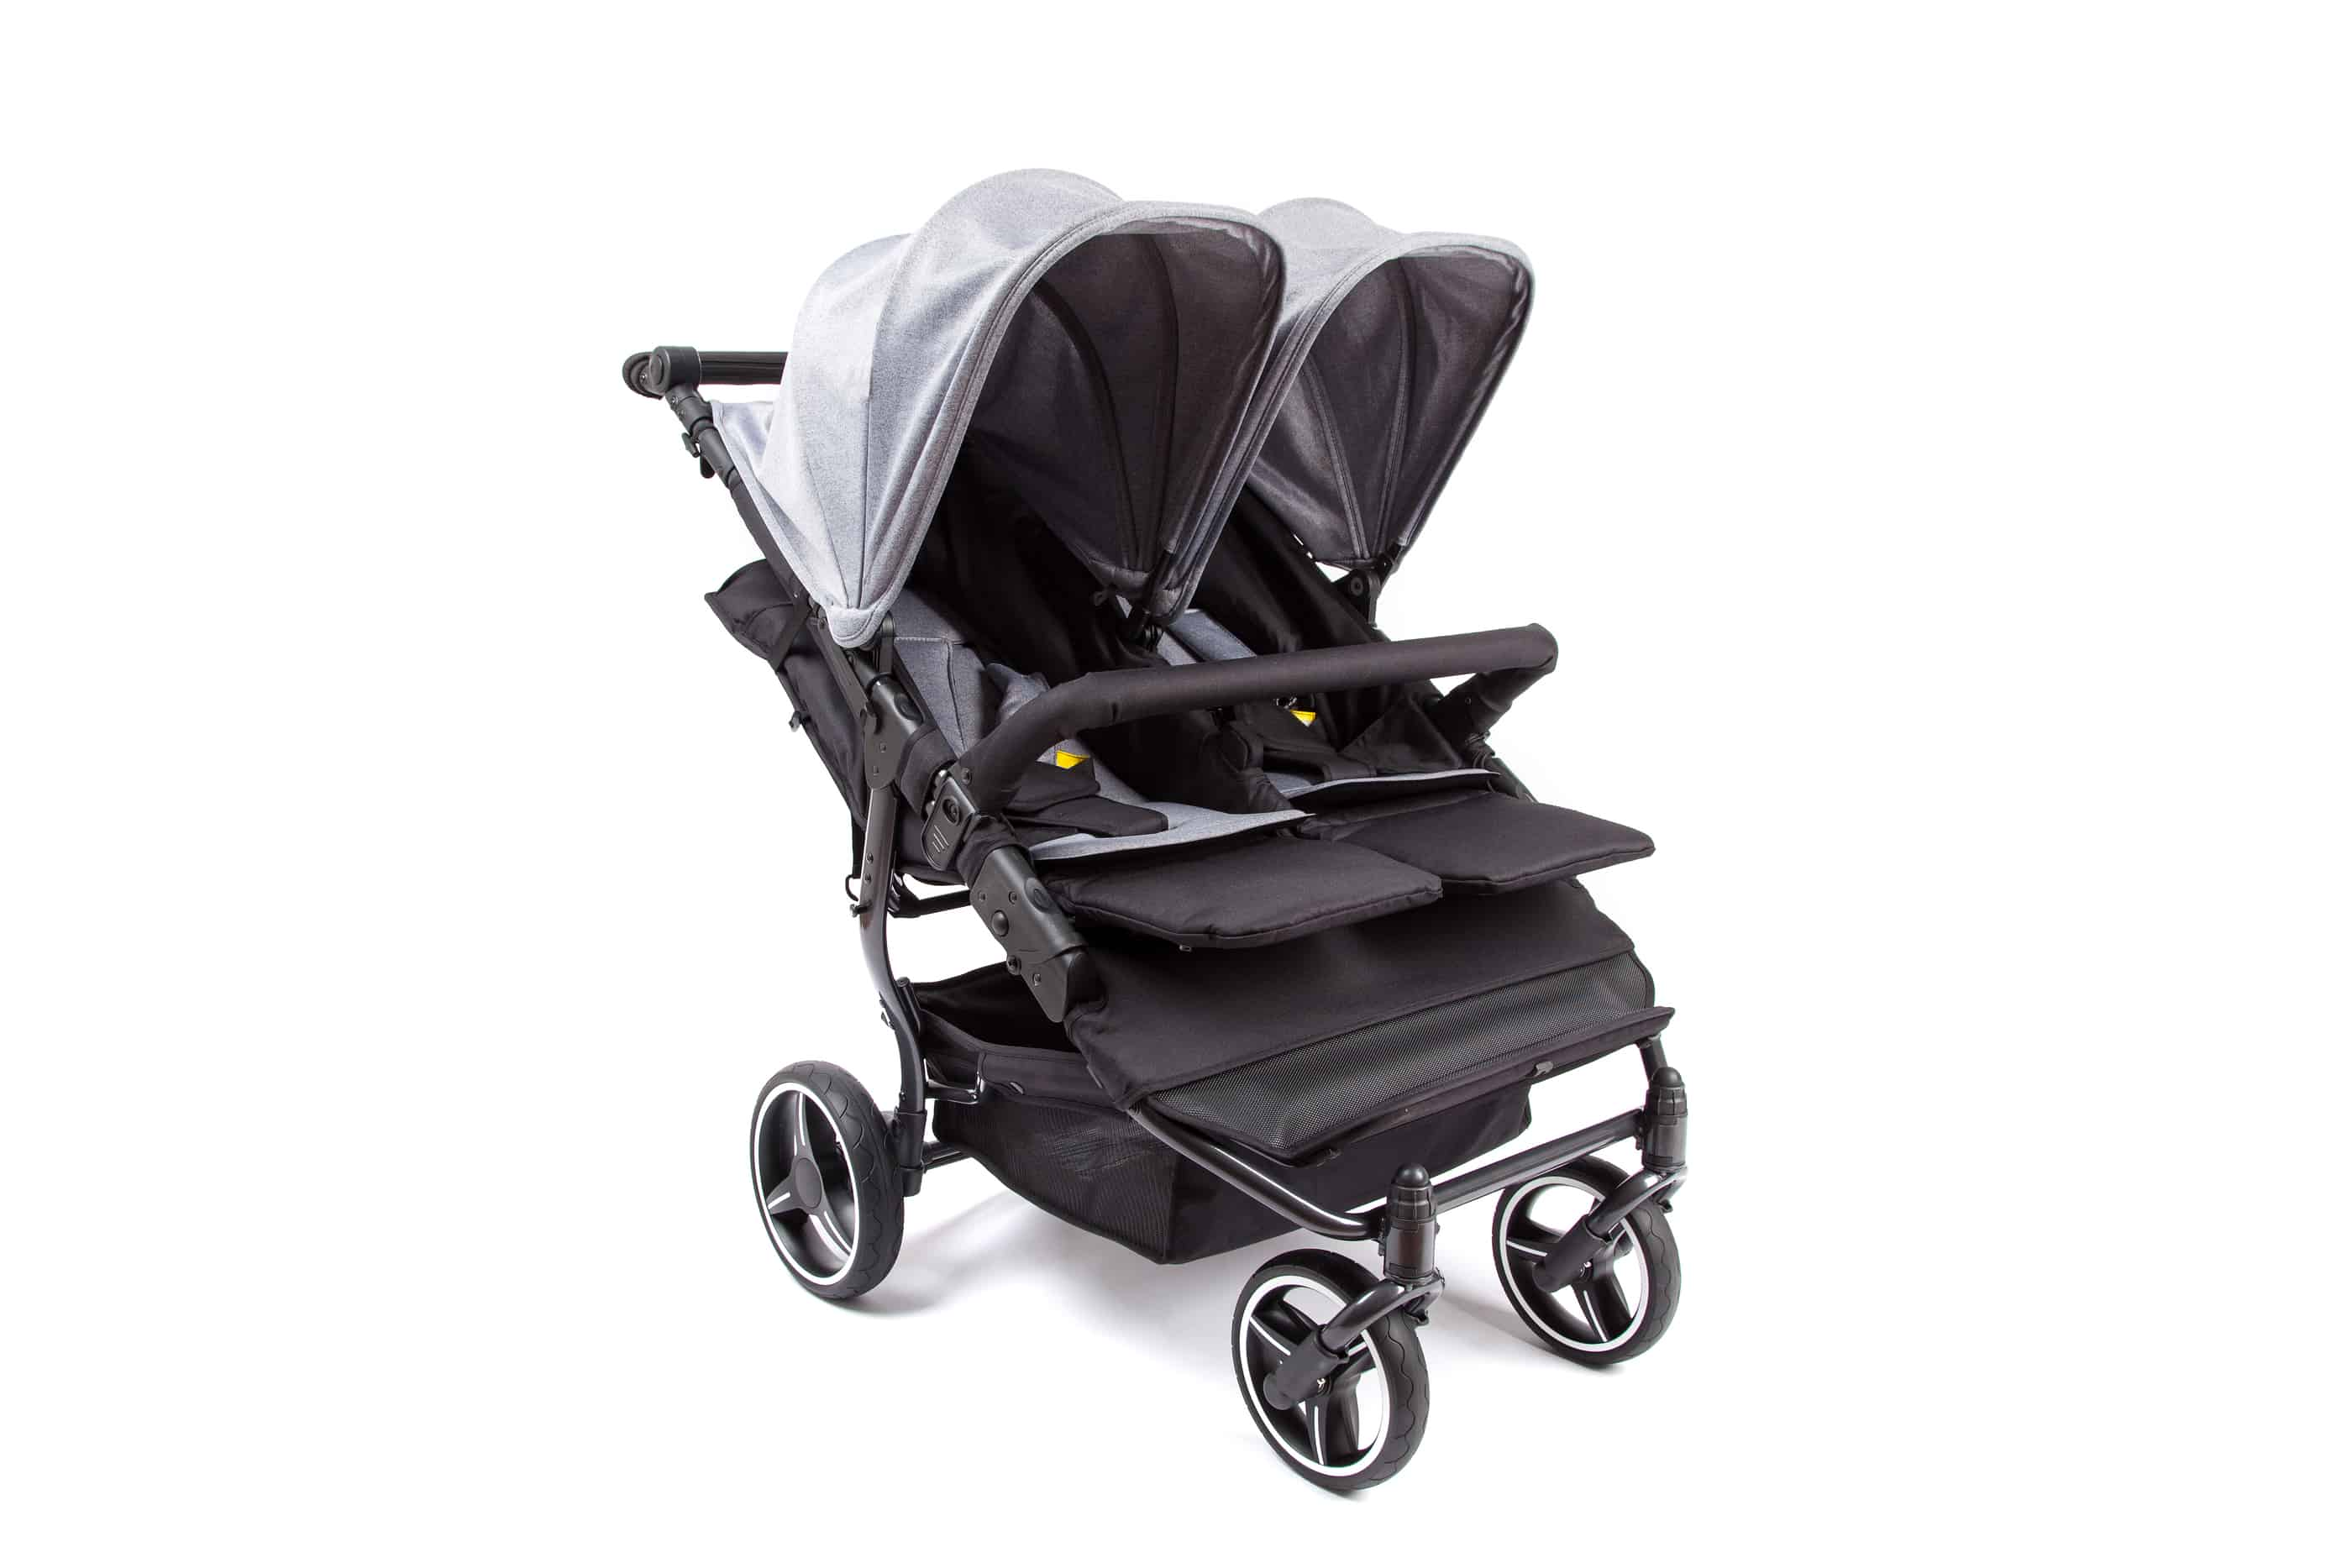 Best Newborn Prams Australia 2018 The Ultimate Guide To Finding The Best Double Pram Australia